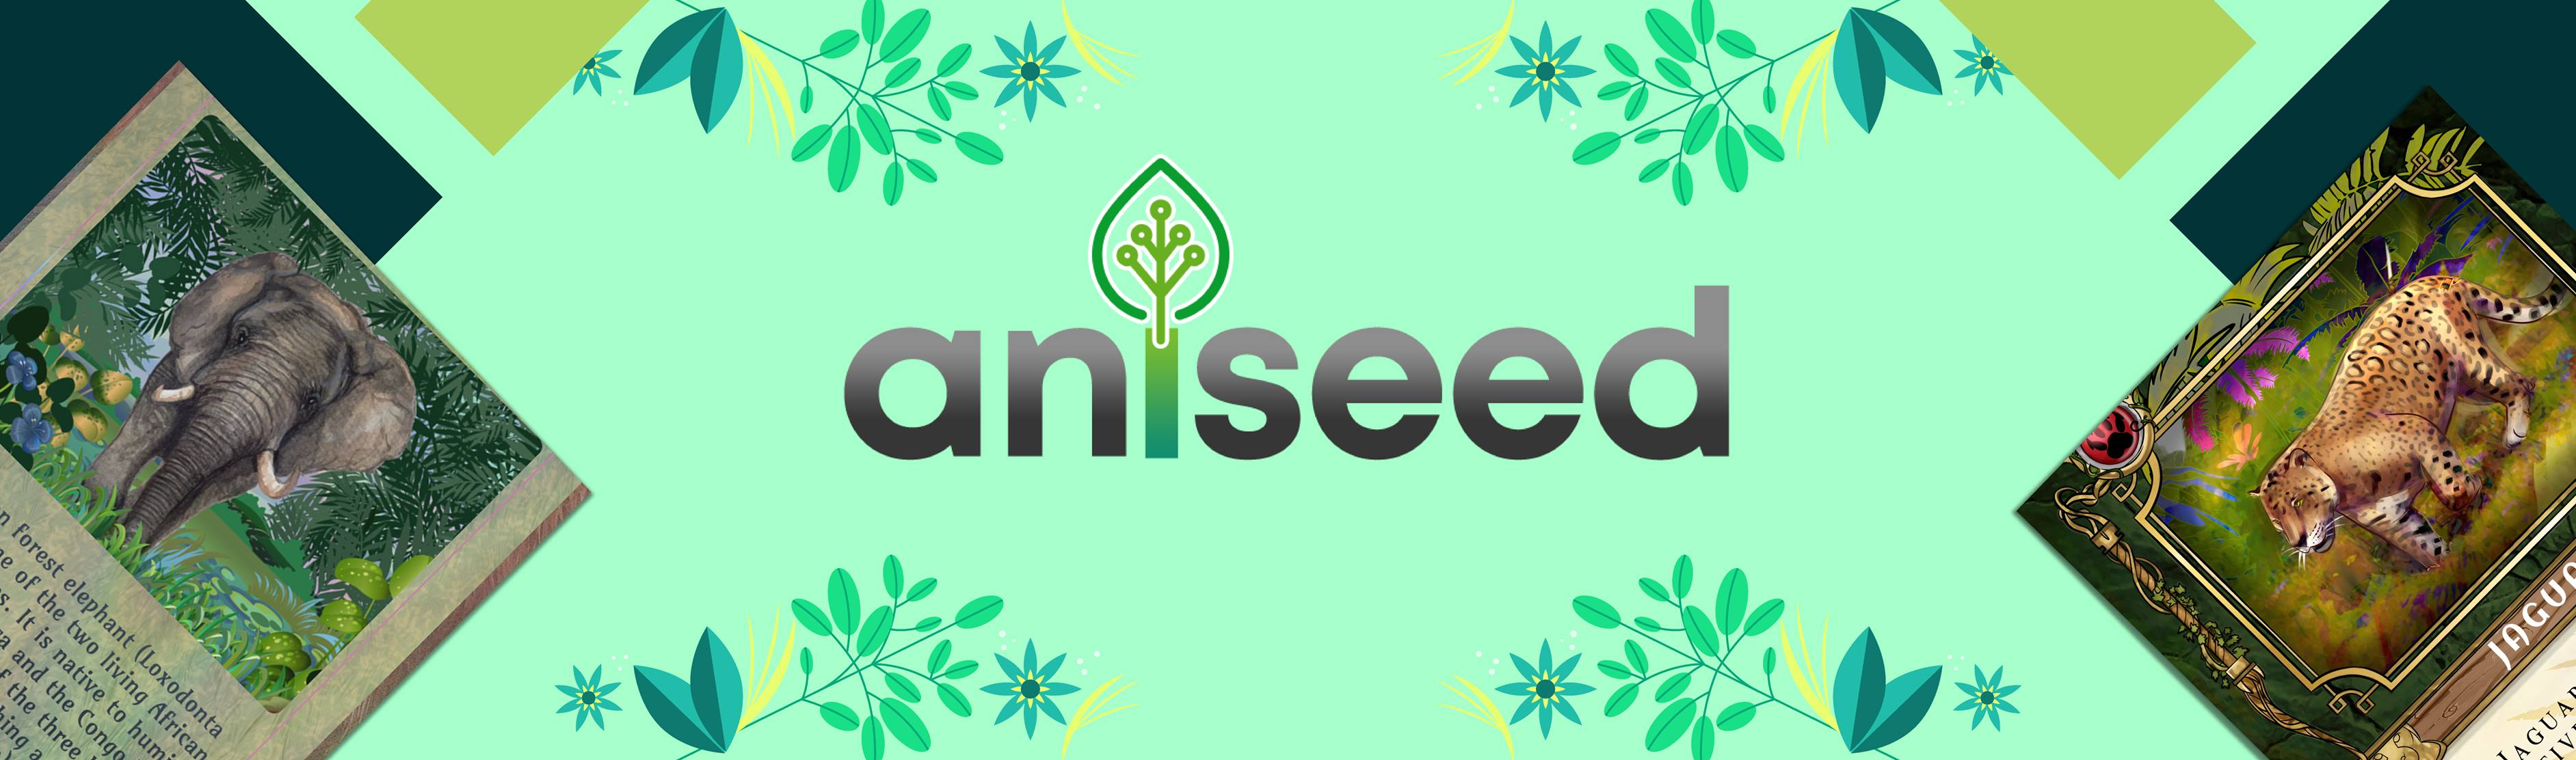 The Aniseed NFT Marketplace: Benefiting Charities and NGO's